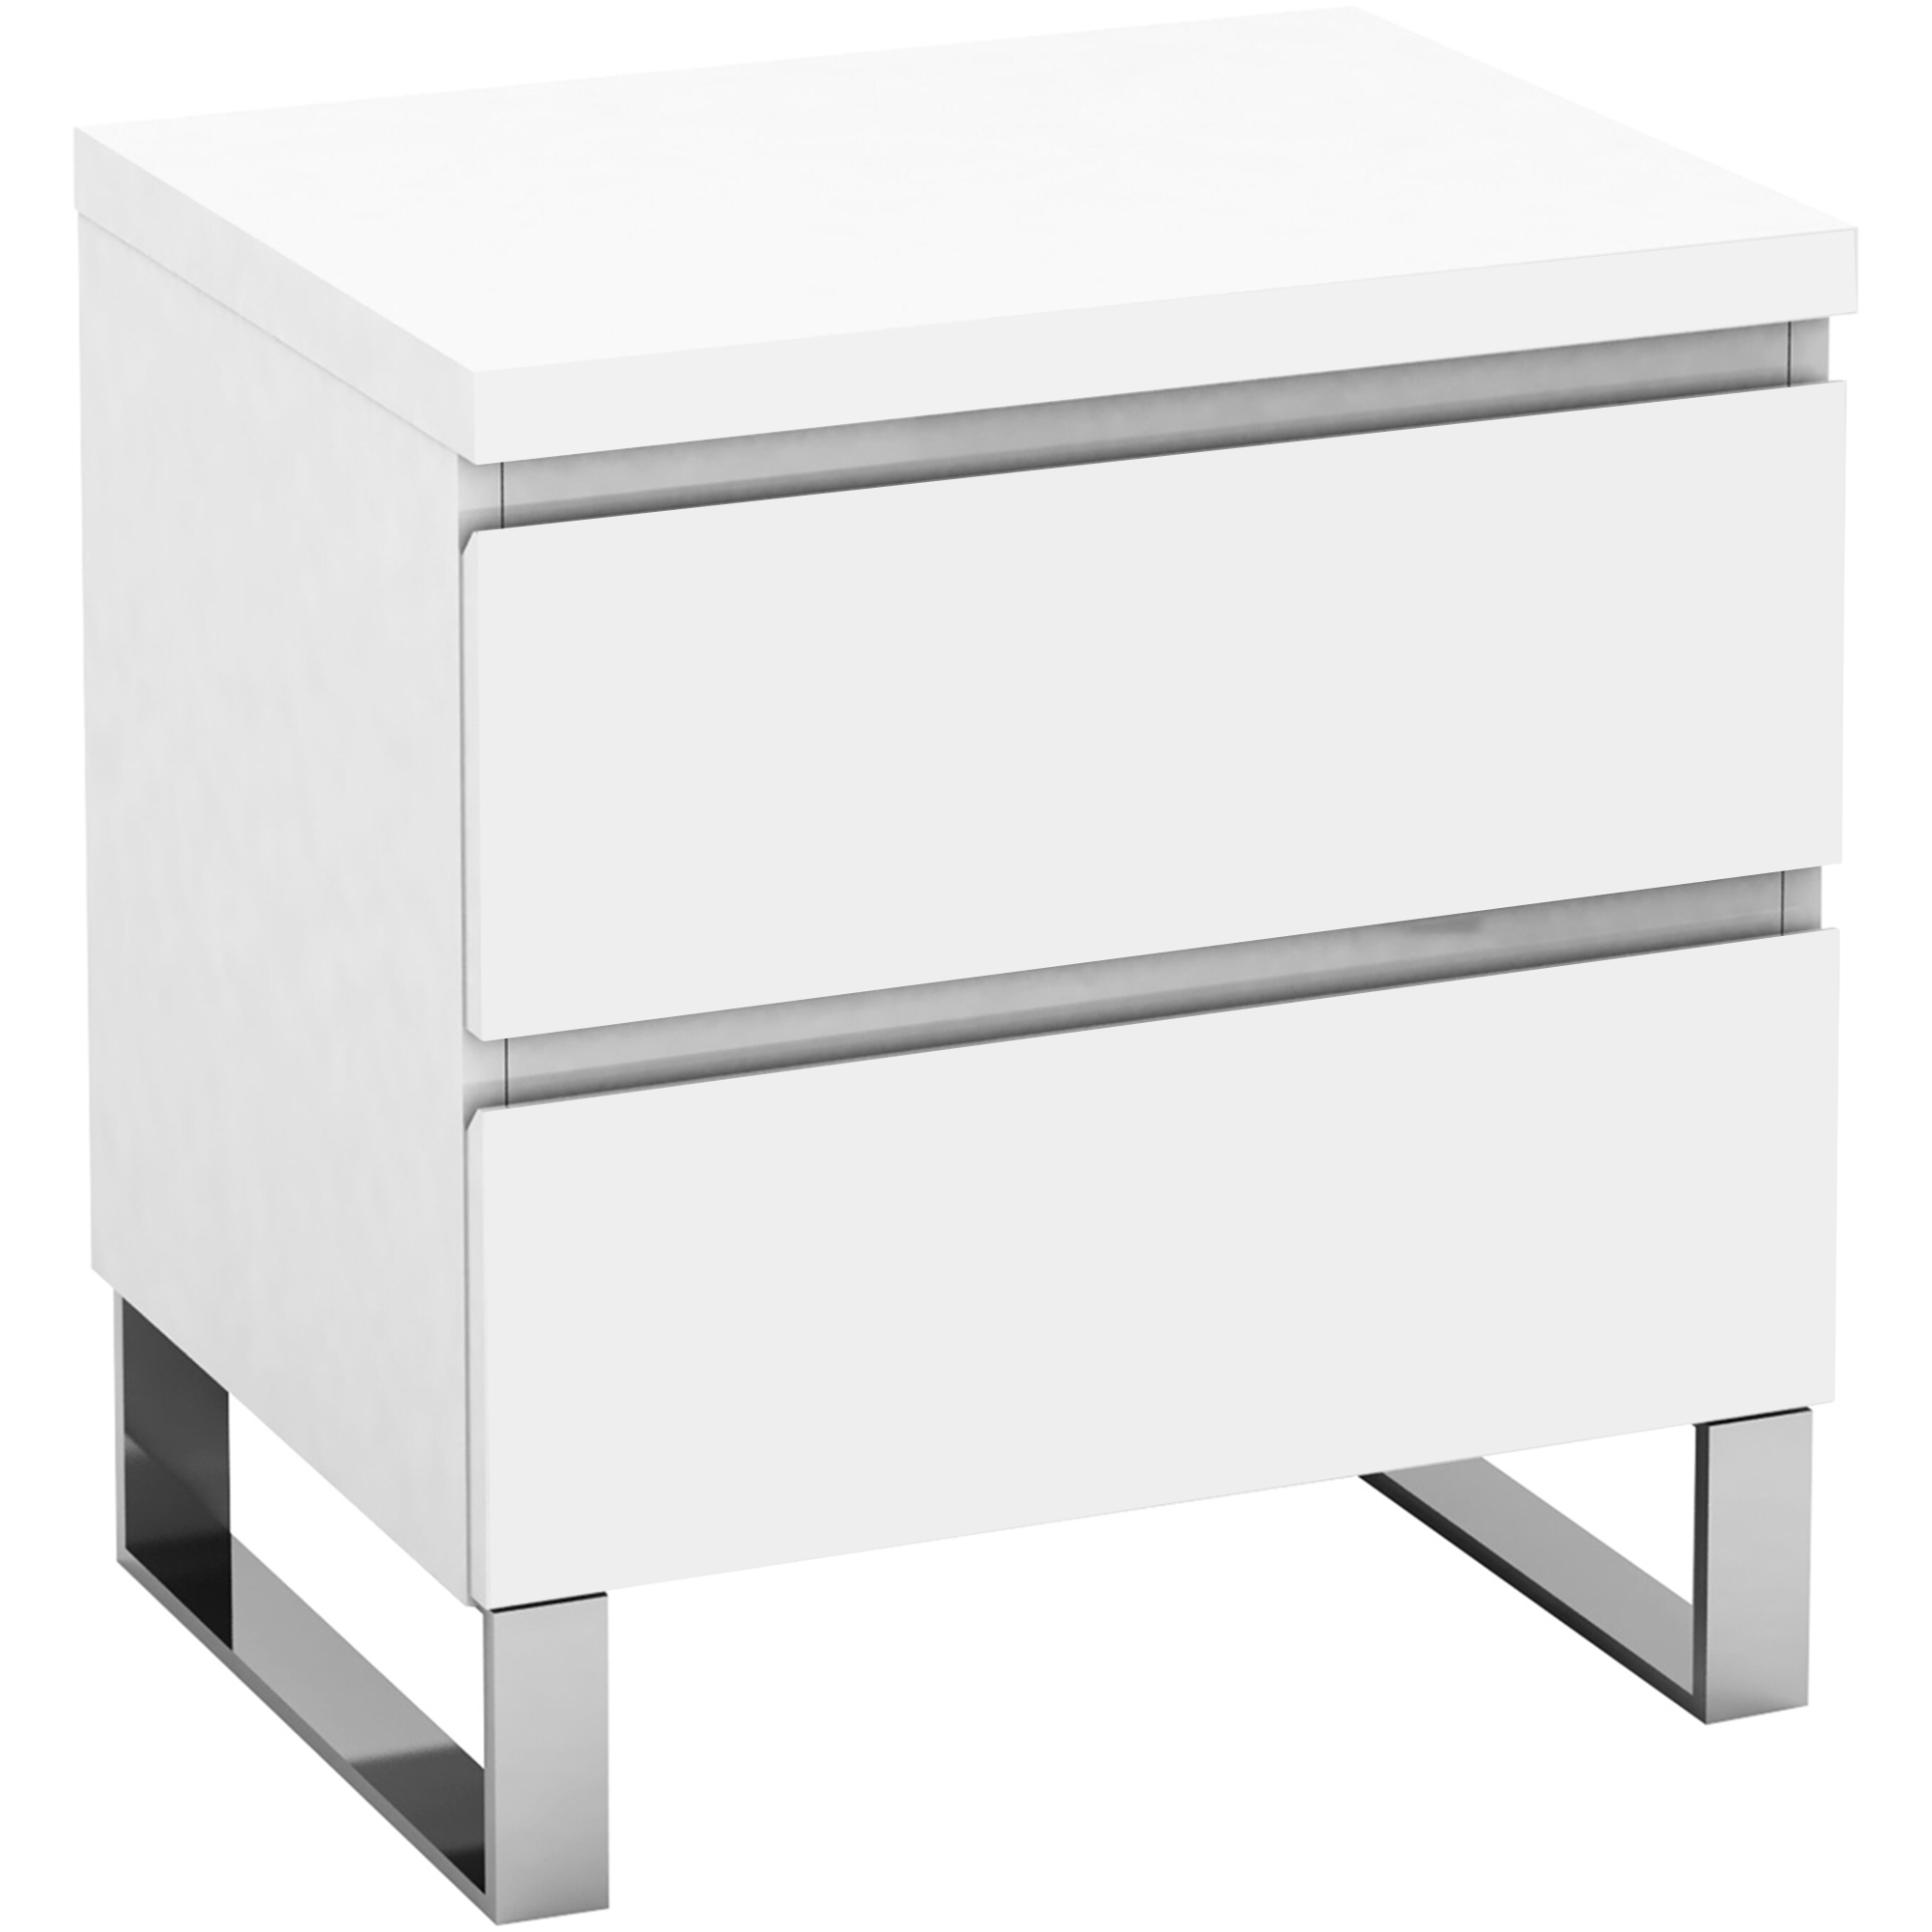 sydney hall drawer style product shaker french table desk drawers furniture classic